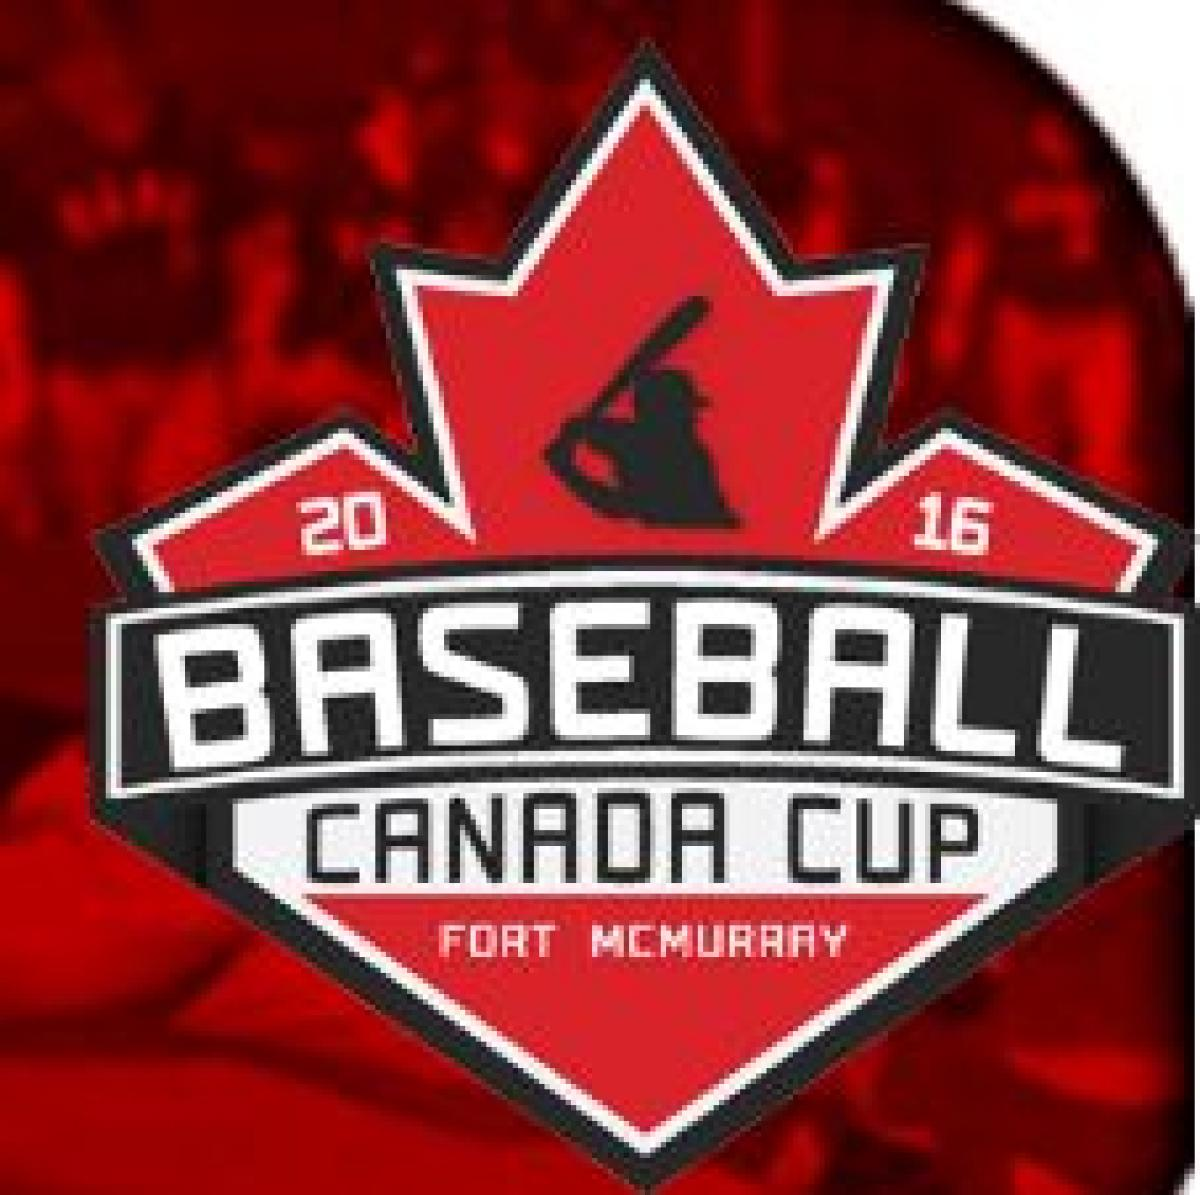 Baseball Canada Cup Day One